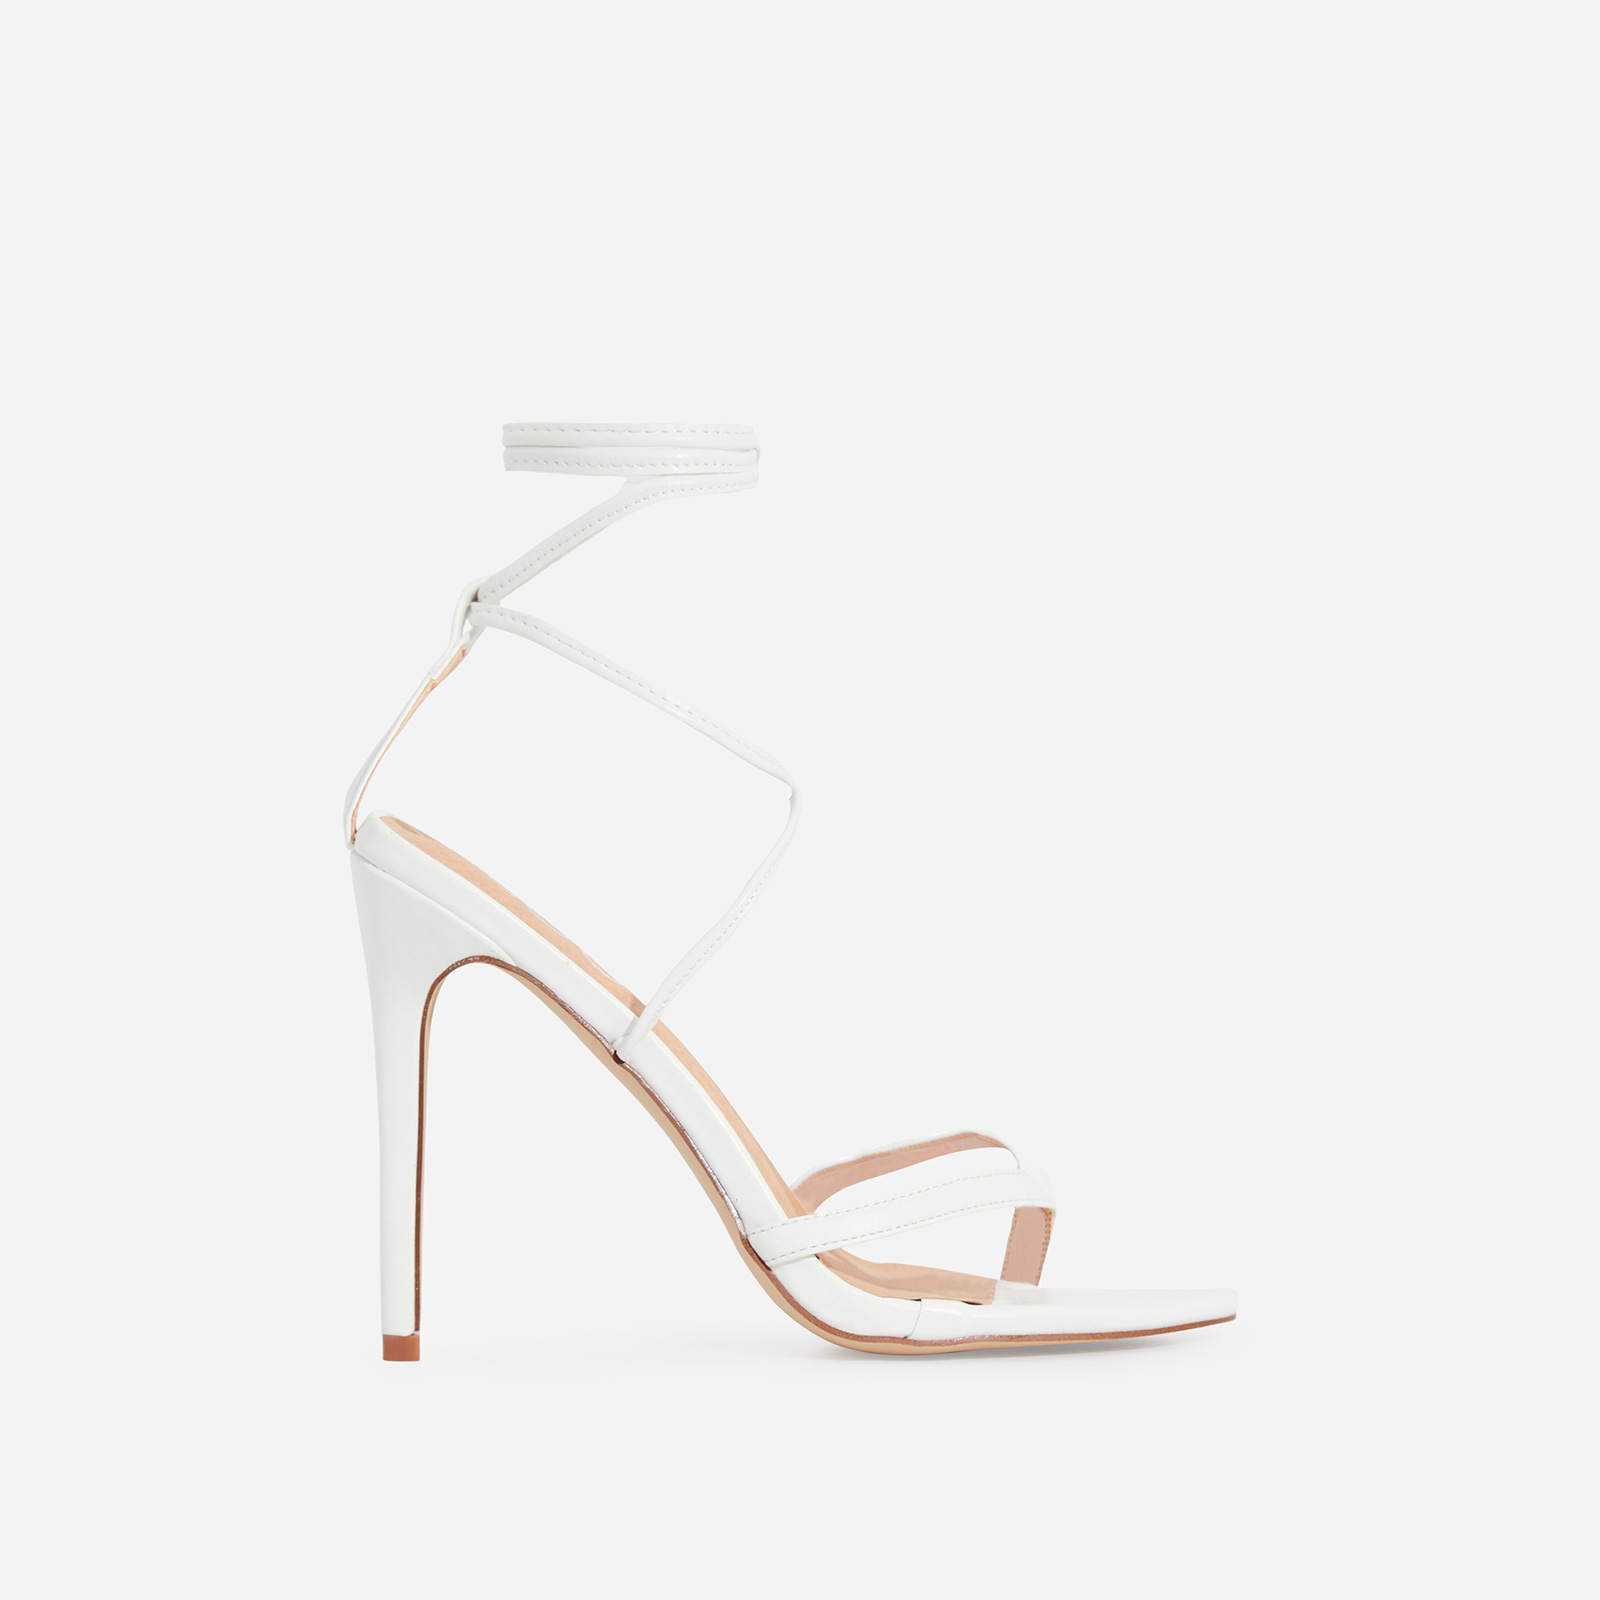 Malina Lace Up Heel In White Faux Leather